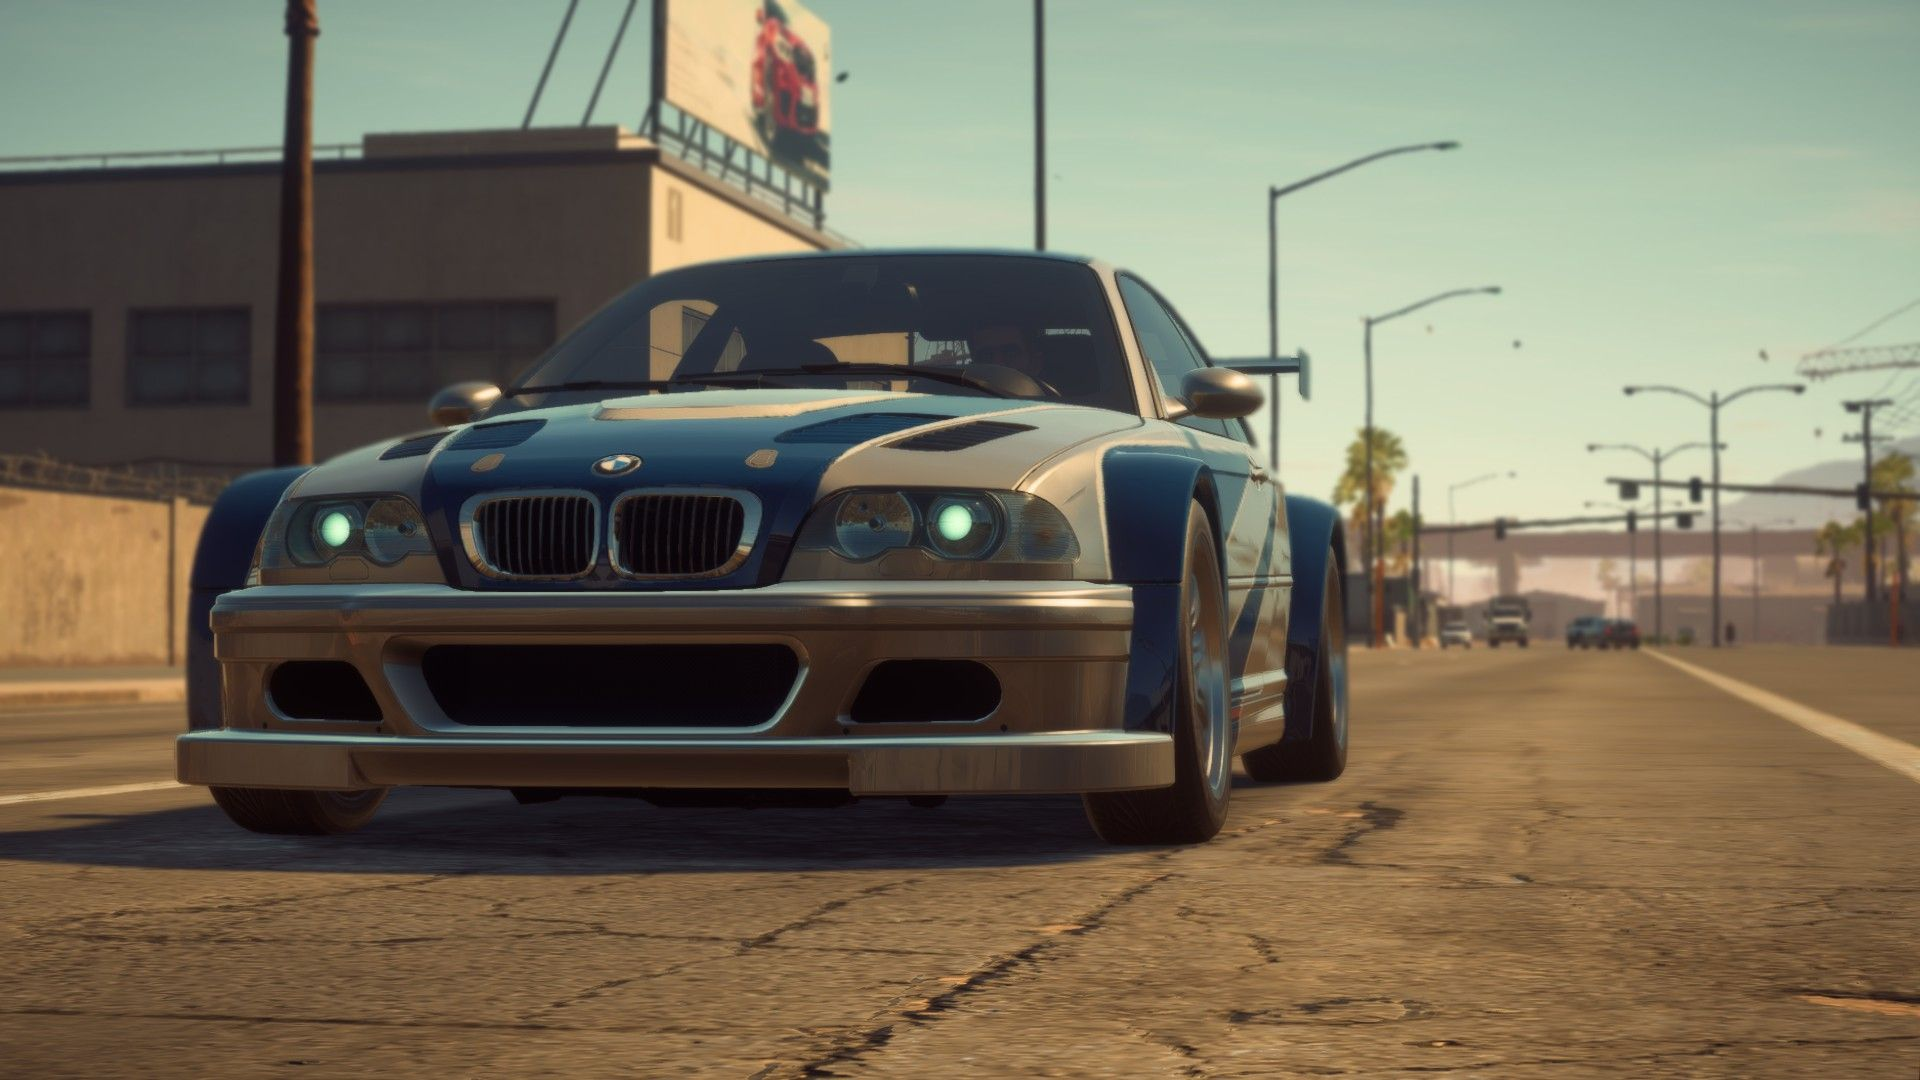 The Player S Bmw M3 E46 Gtr From Most Wanted 2005 1 Carros Auto